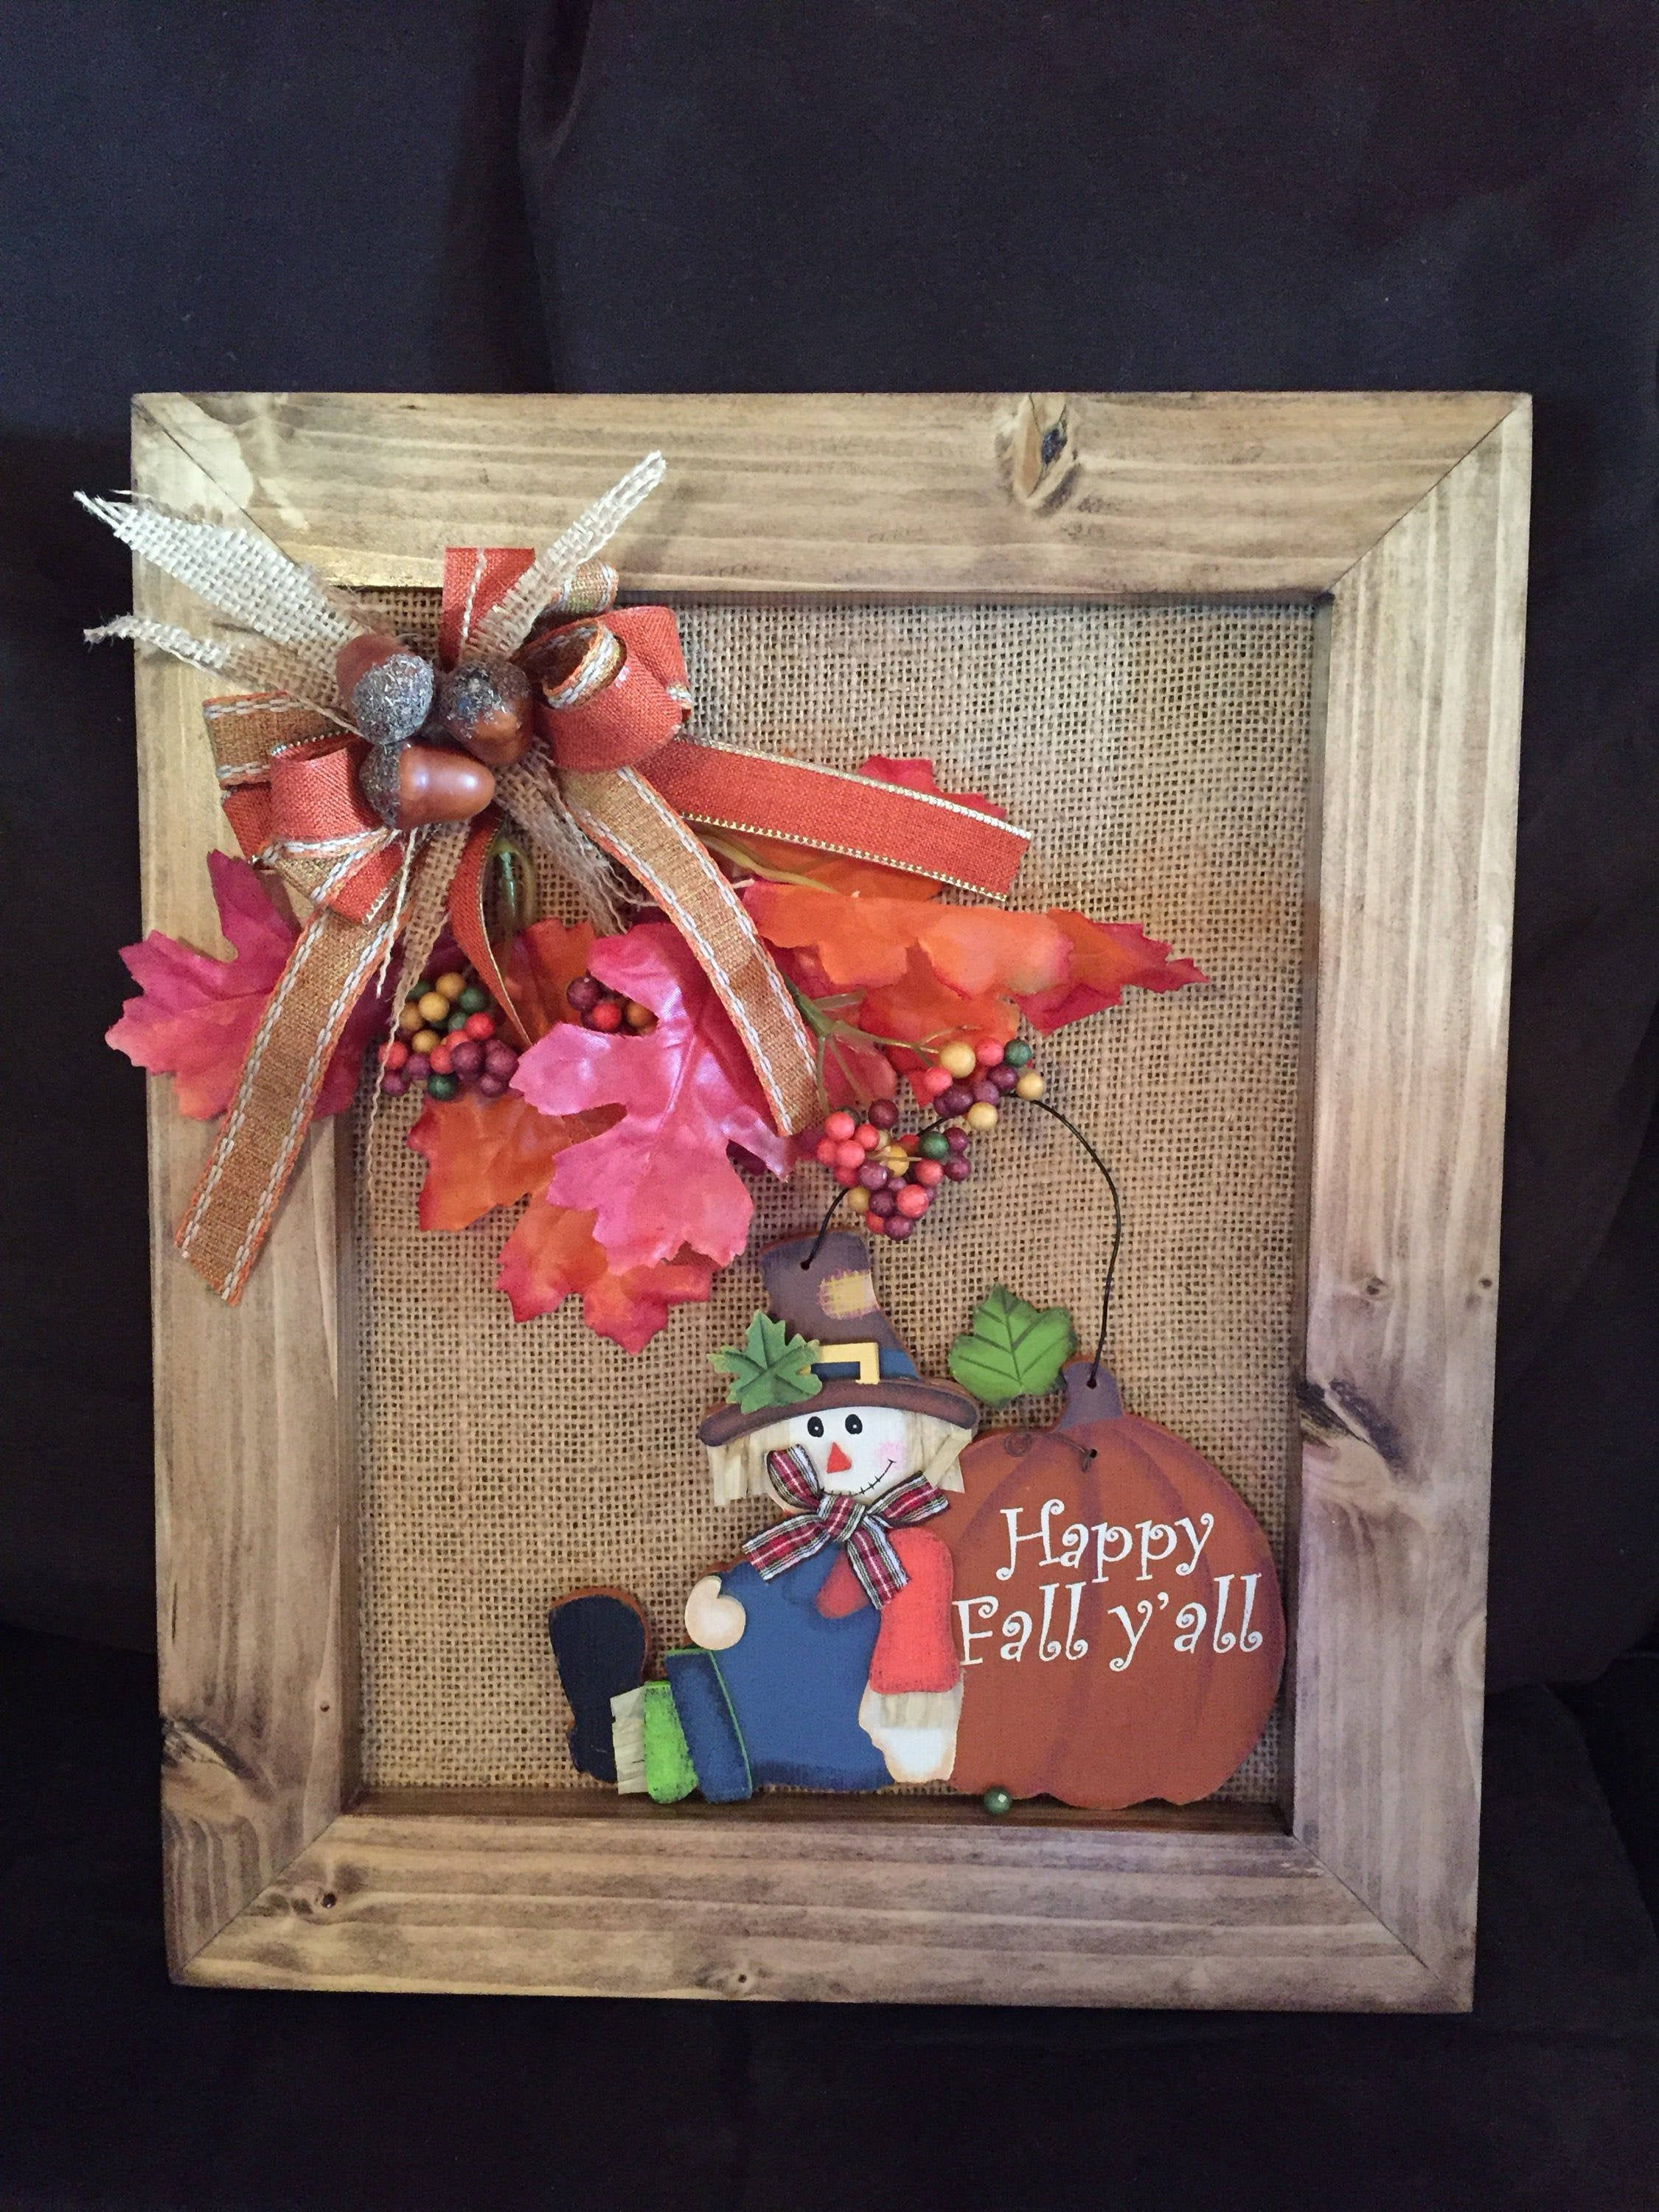 Rustic Fall Decor By Kchattscraftings On Etsy Rustic Fall Decor Fall Decor Wedding Picture Frames